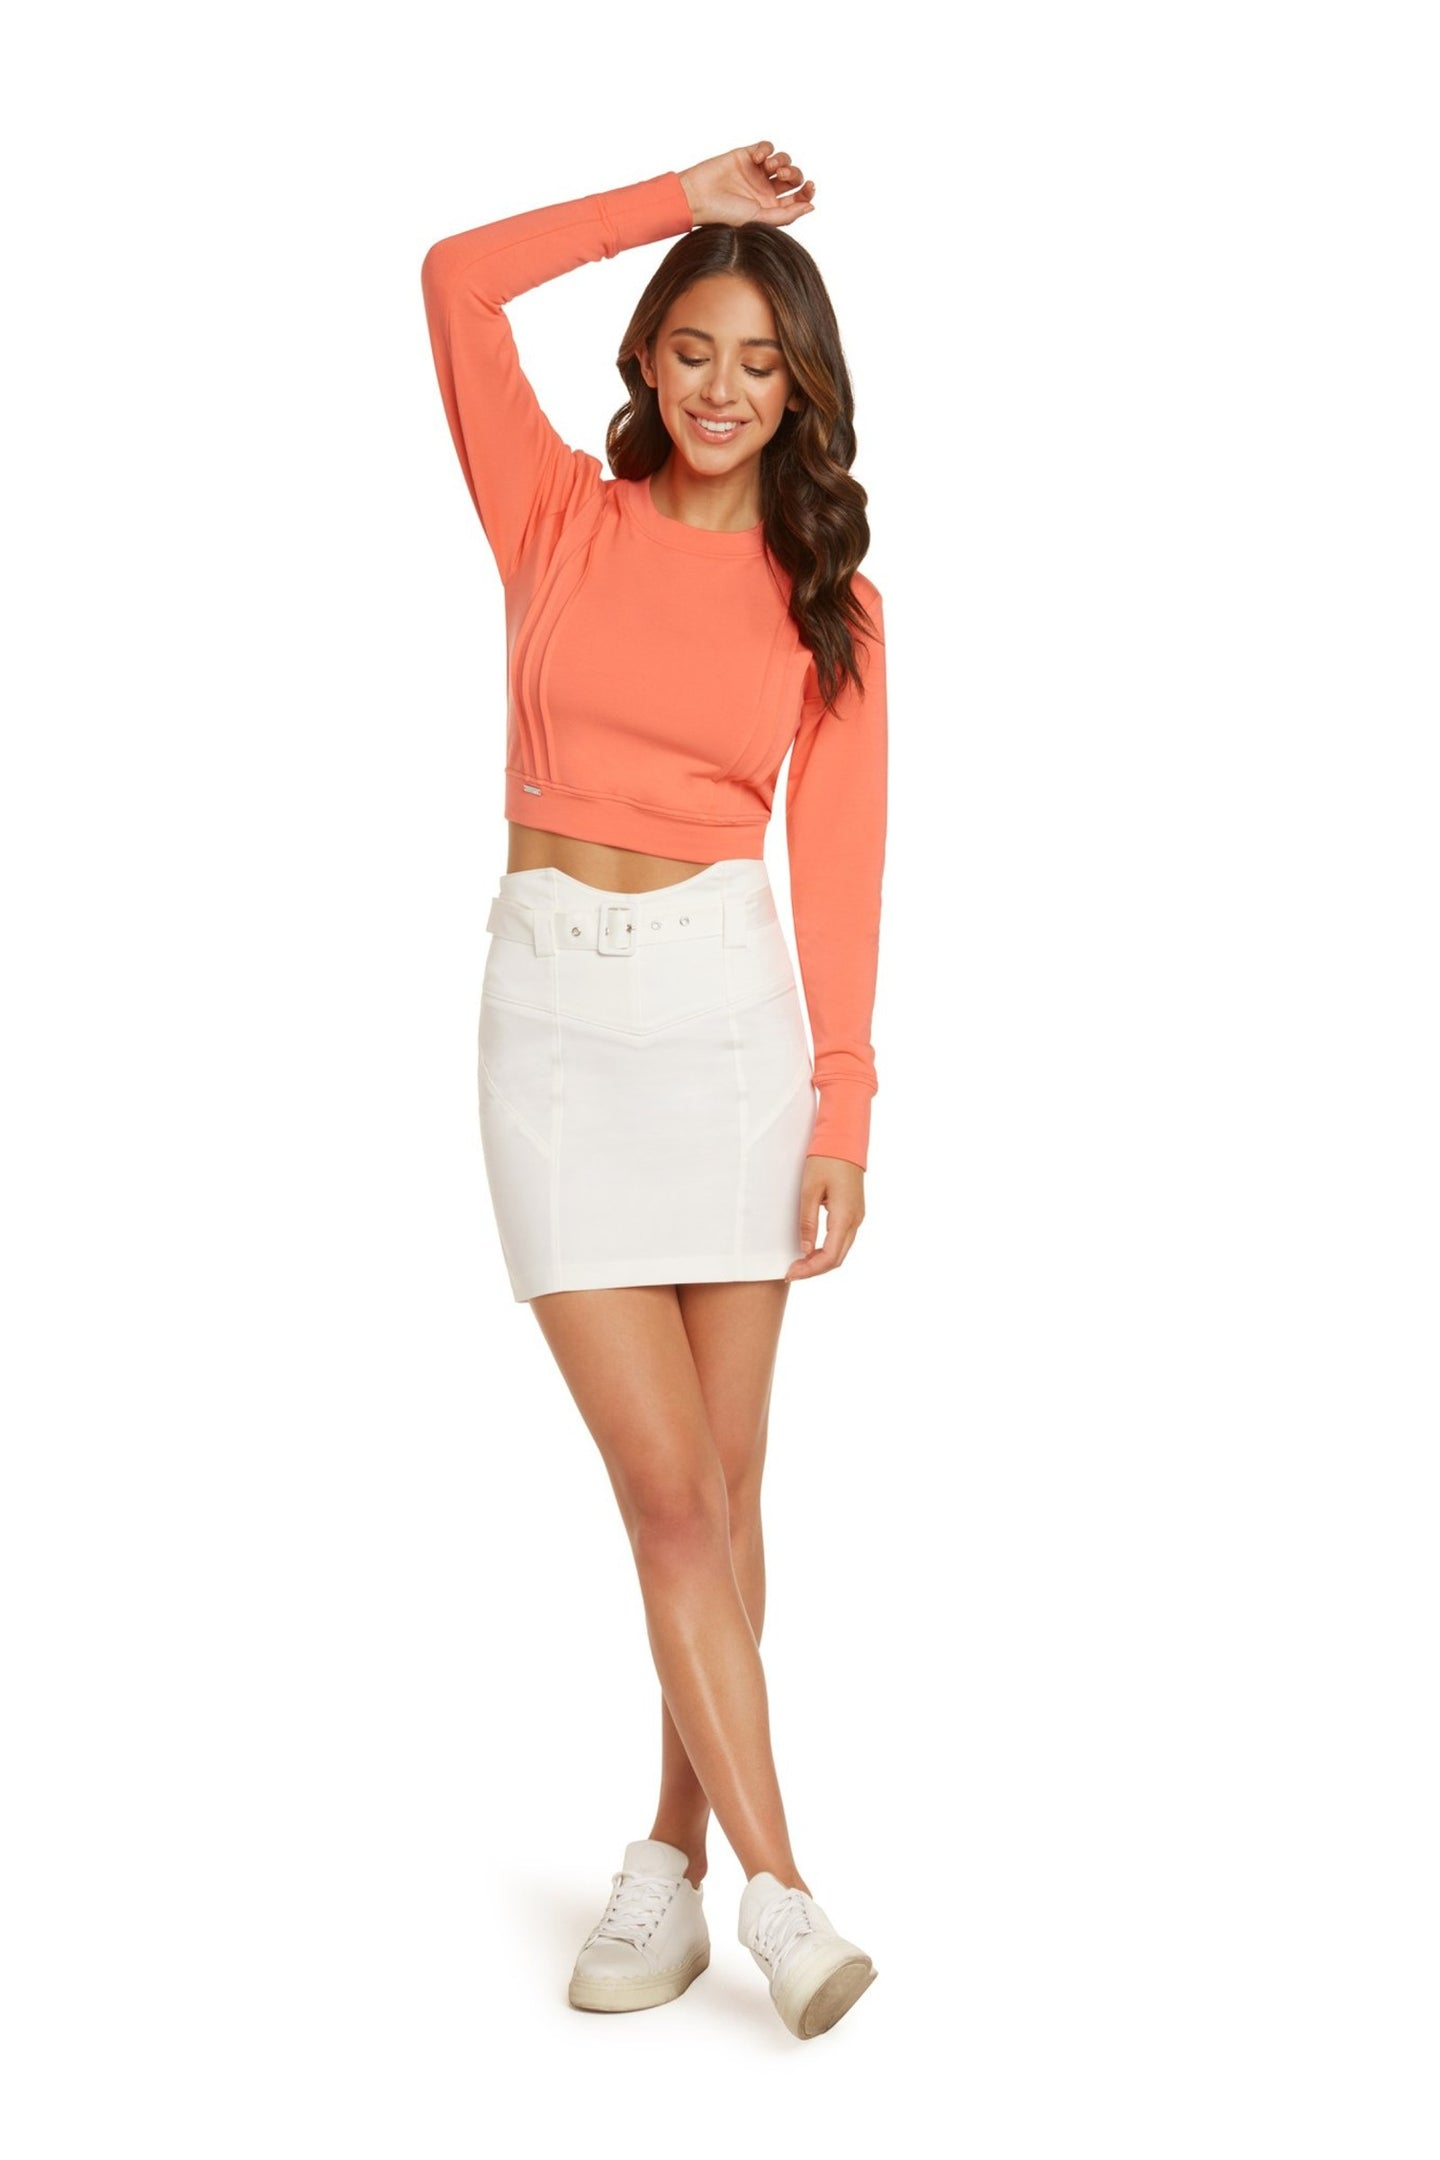 Jade Crew Neck Crop Top in Coral Modal French Terry with Pin Tucks